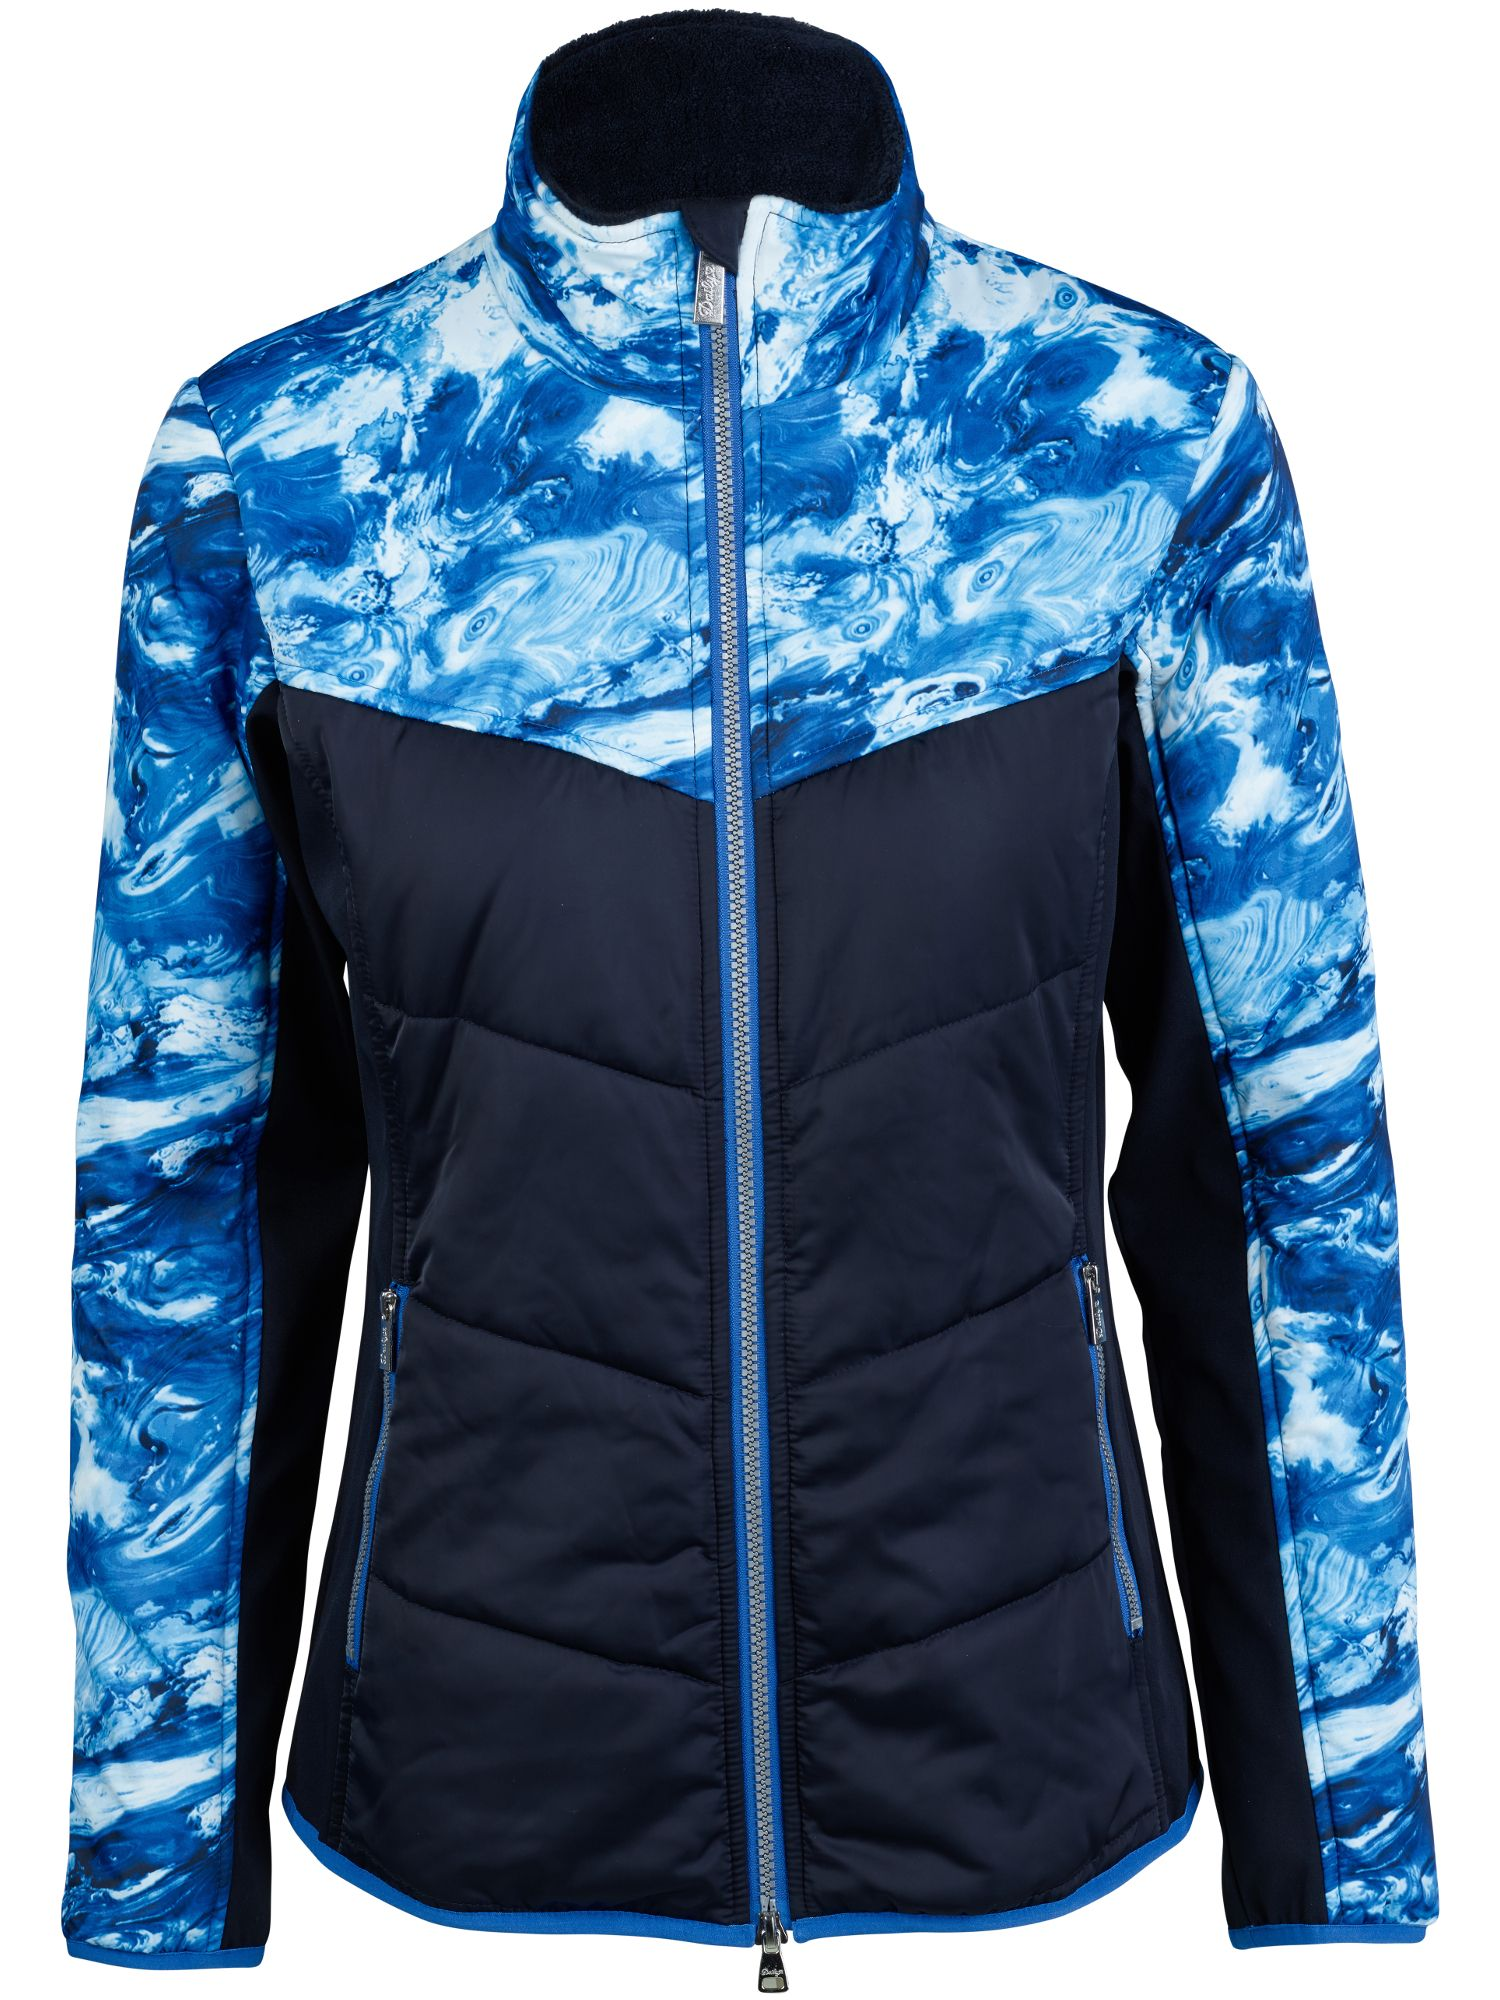 Daily Sports Oceana Wind Jacket, Blue